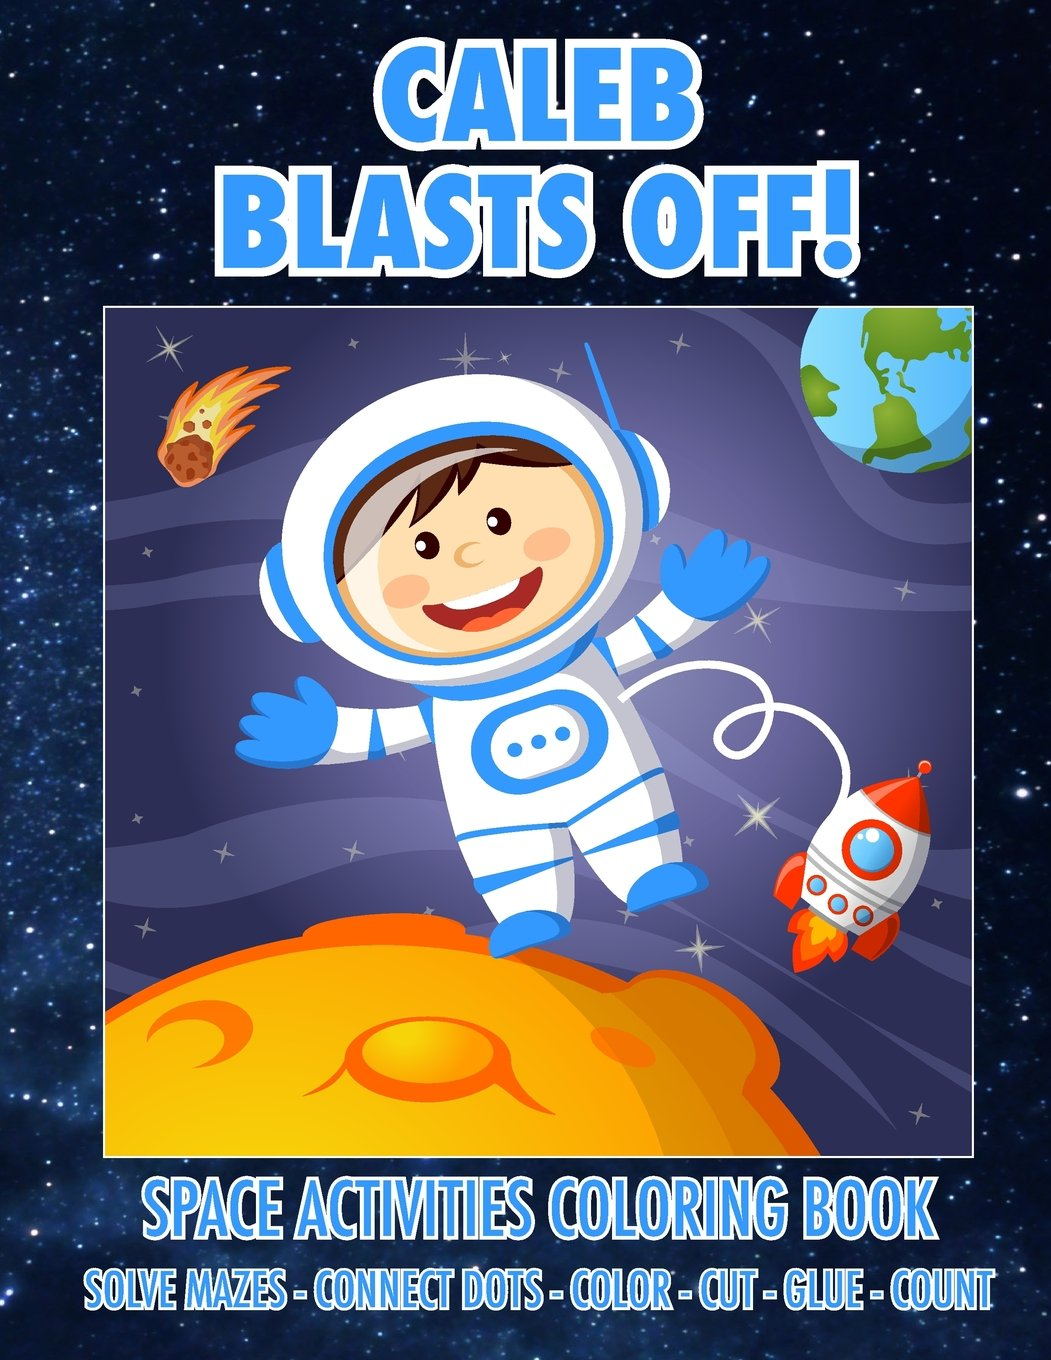 Caleb Blasts Off! Space Activities Coloring Book: Solve Mazes - Connect Dots - Color - Cut - Glue - Count (Personalized Books for Children) PDF